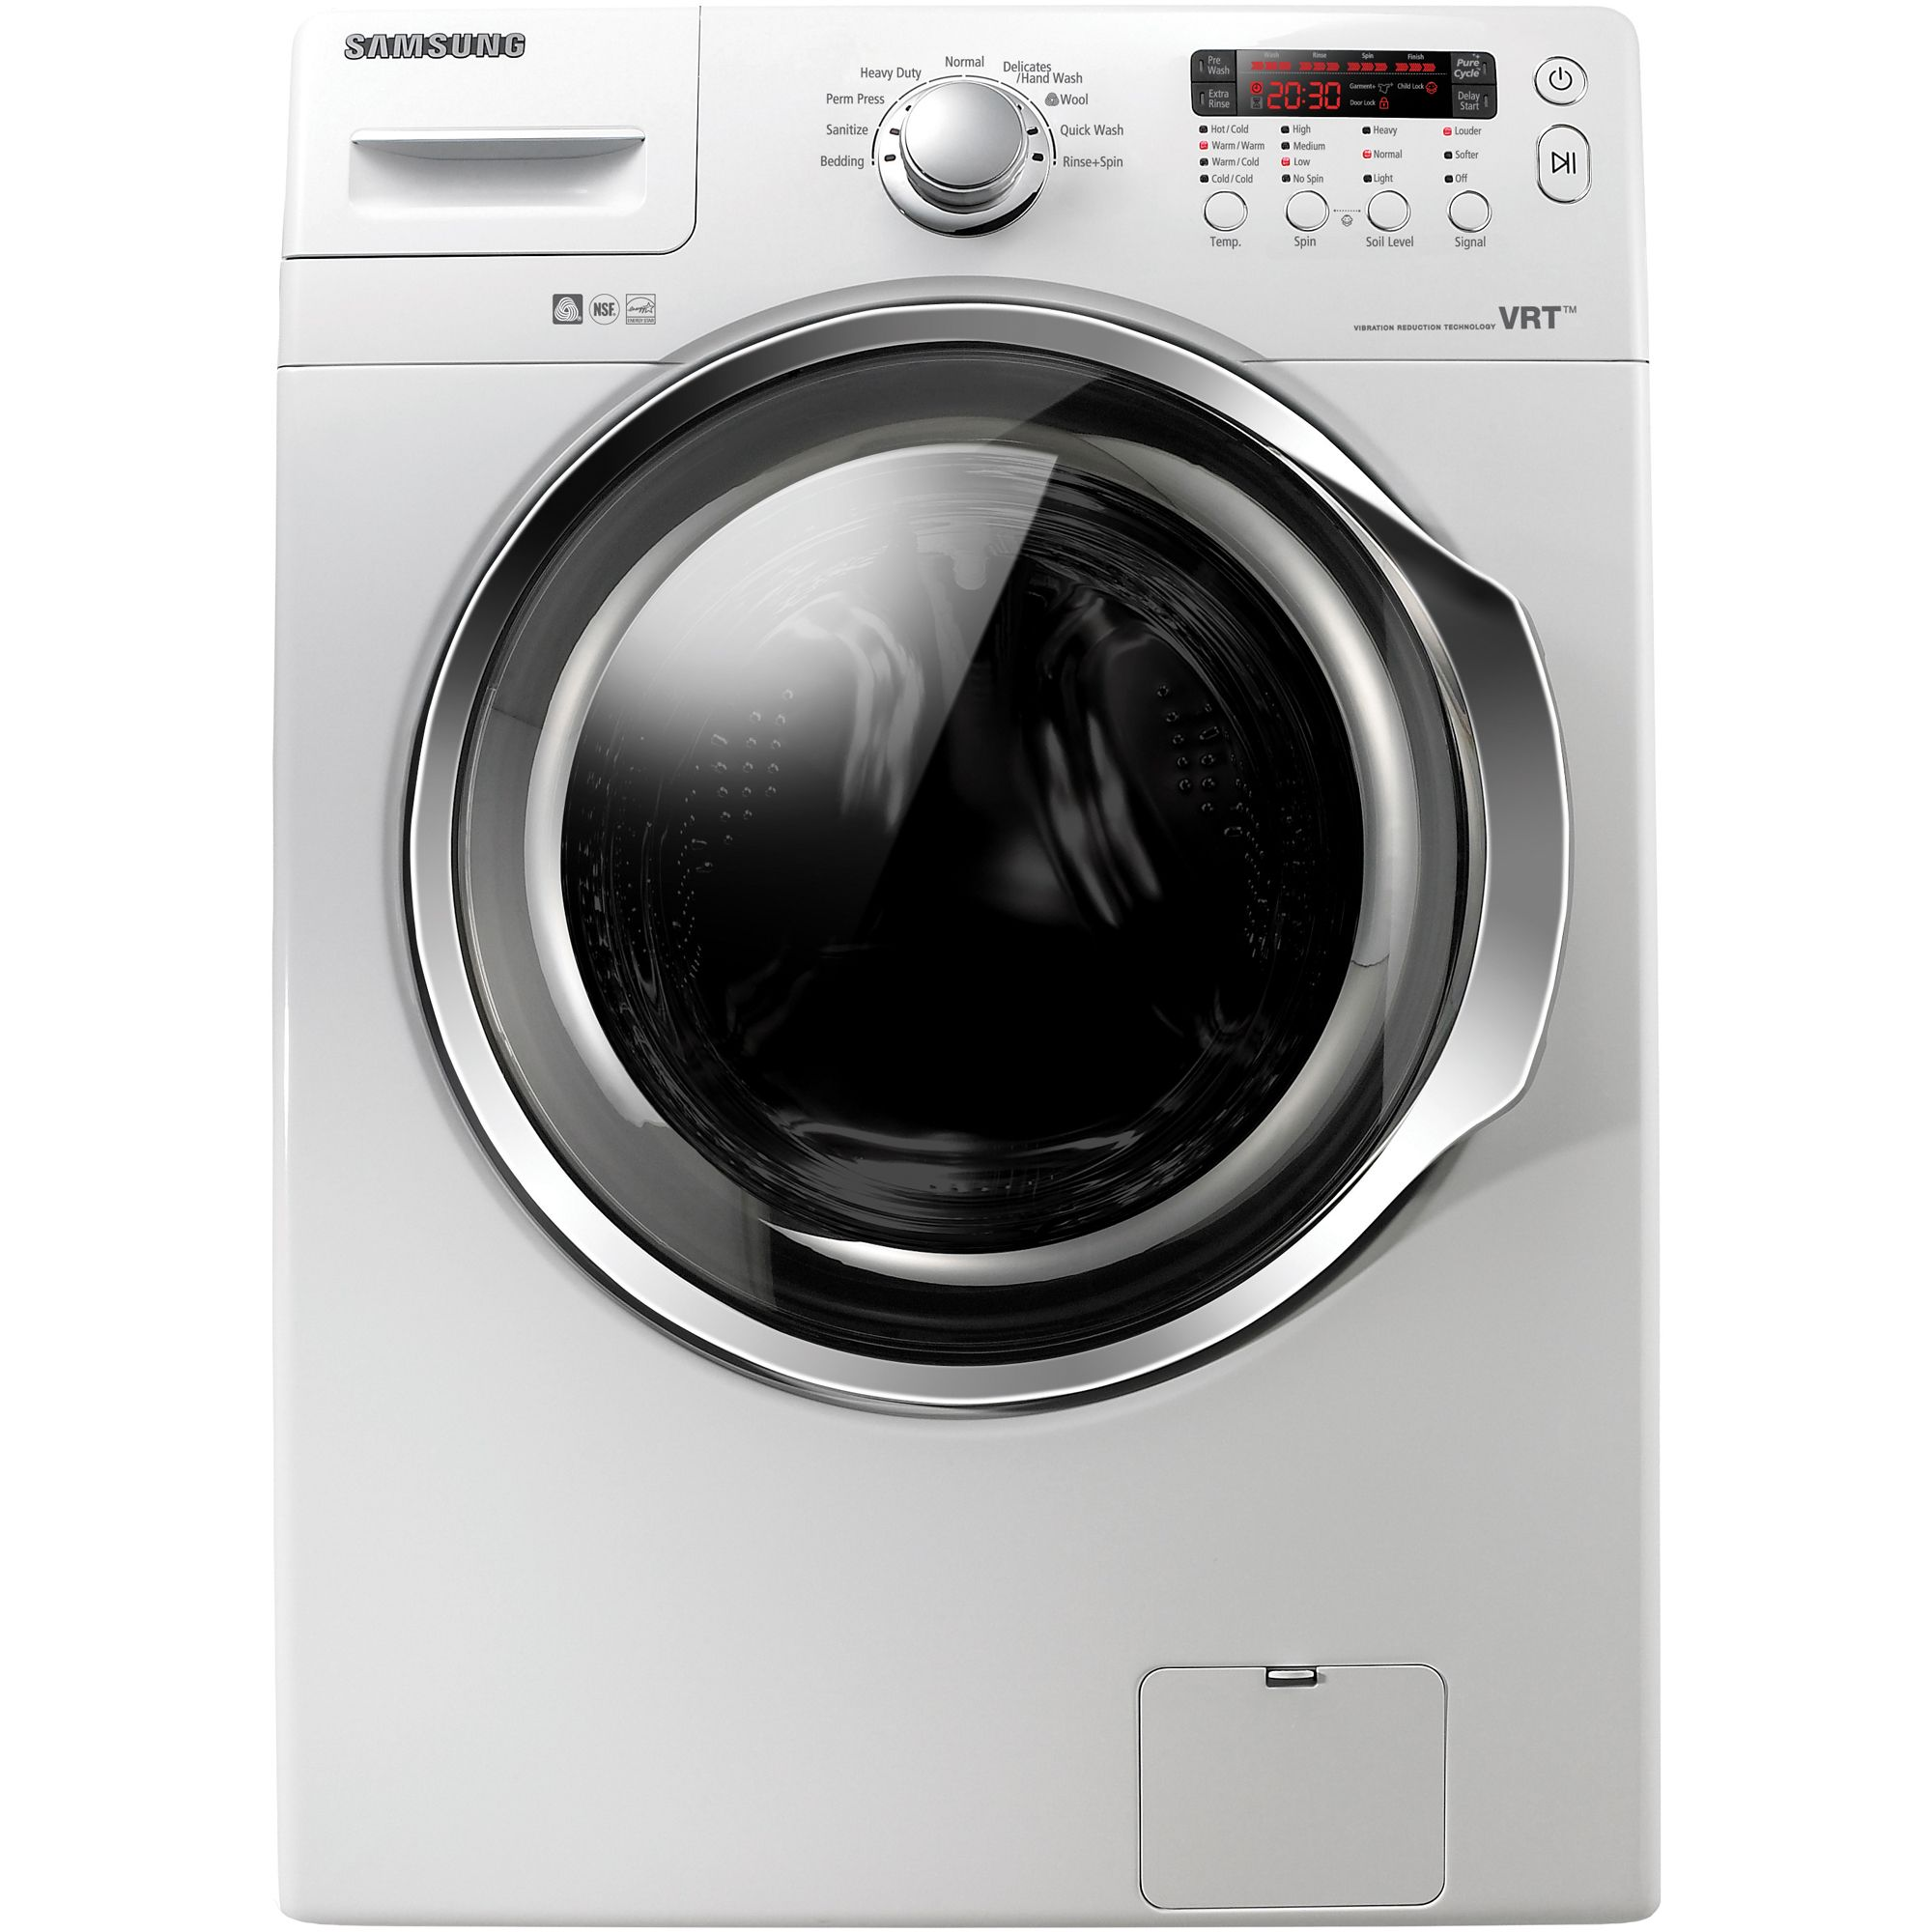 Samsung Front Load Washer Check Out Samsung 3 7 Cu Ft Front Load Washer Shopyourway